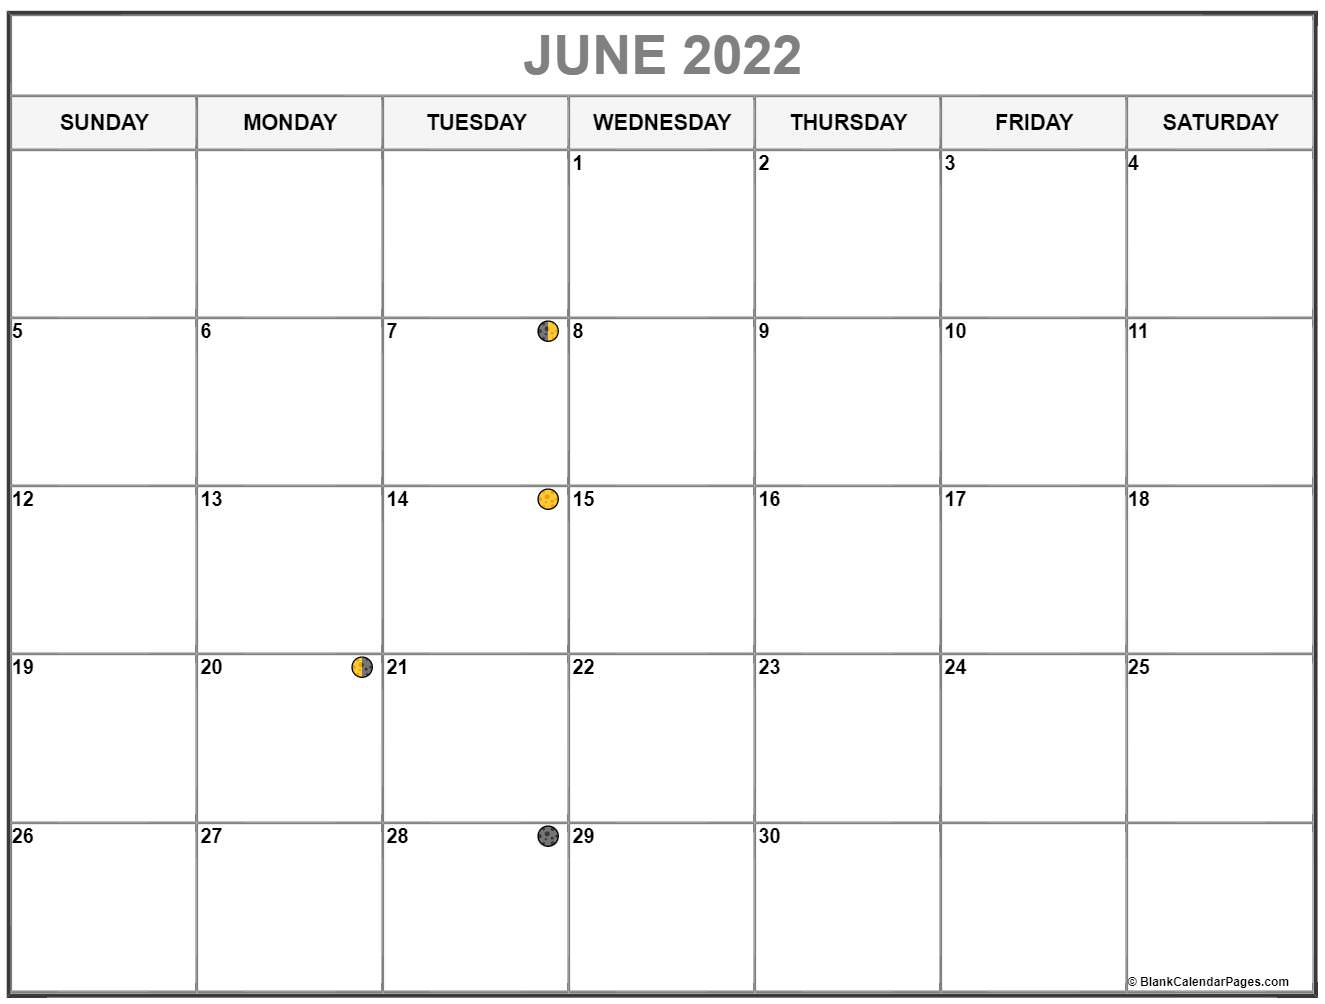 June 2022 lunar calendar. Moon phases with USA holidays